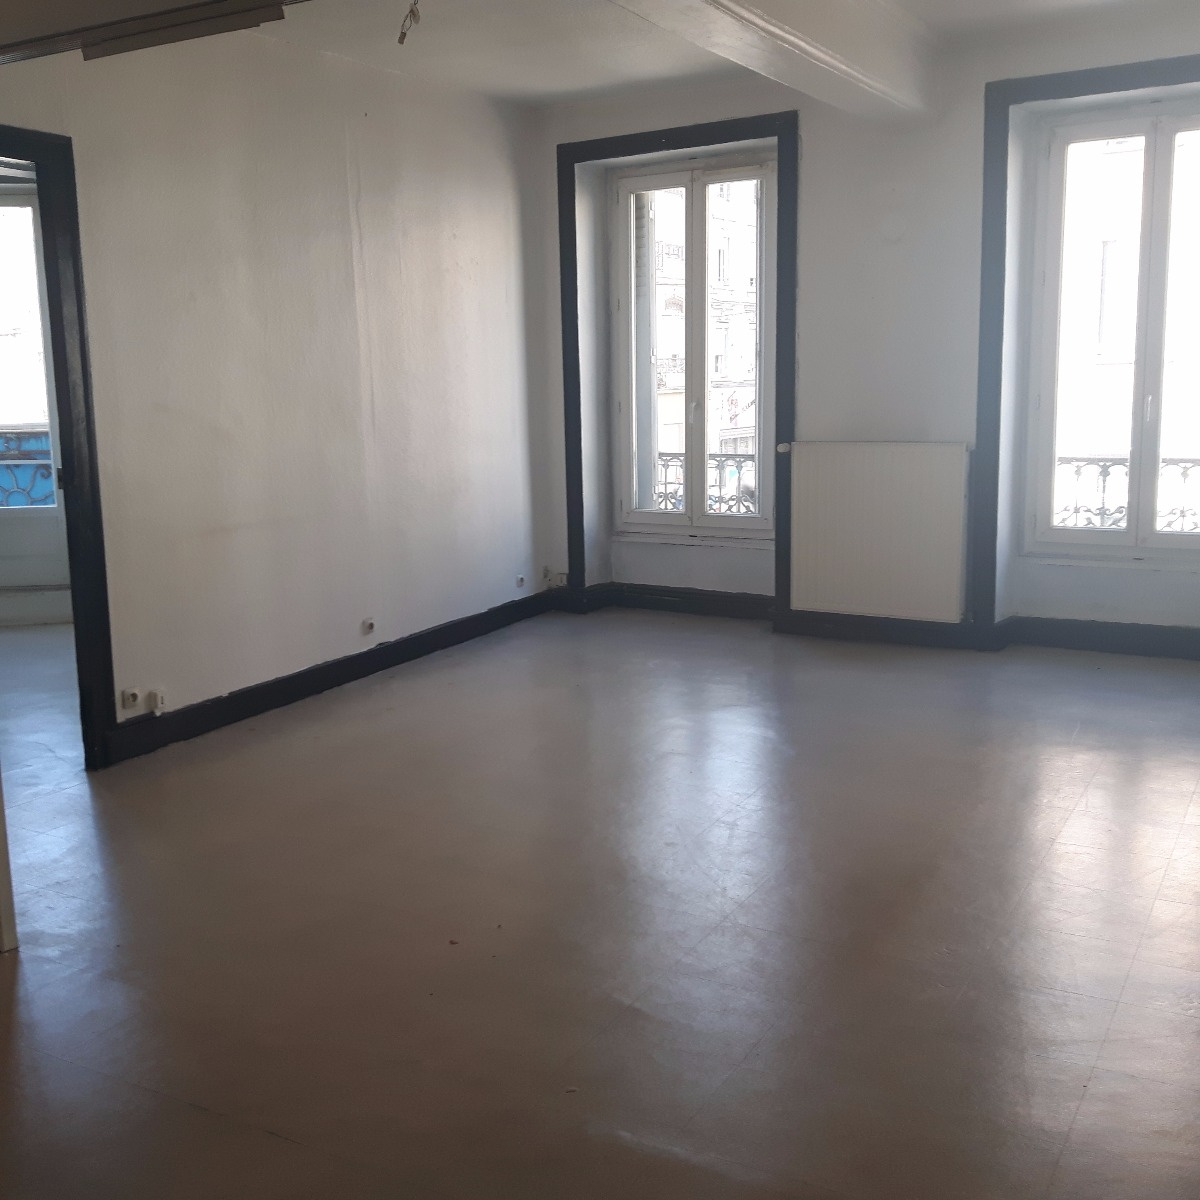 Agence pilat immobilier agence immobili re maclas 42520 for Agence immobiliere 42